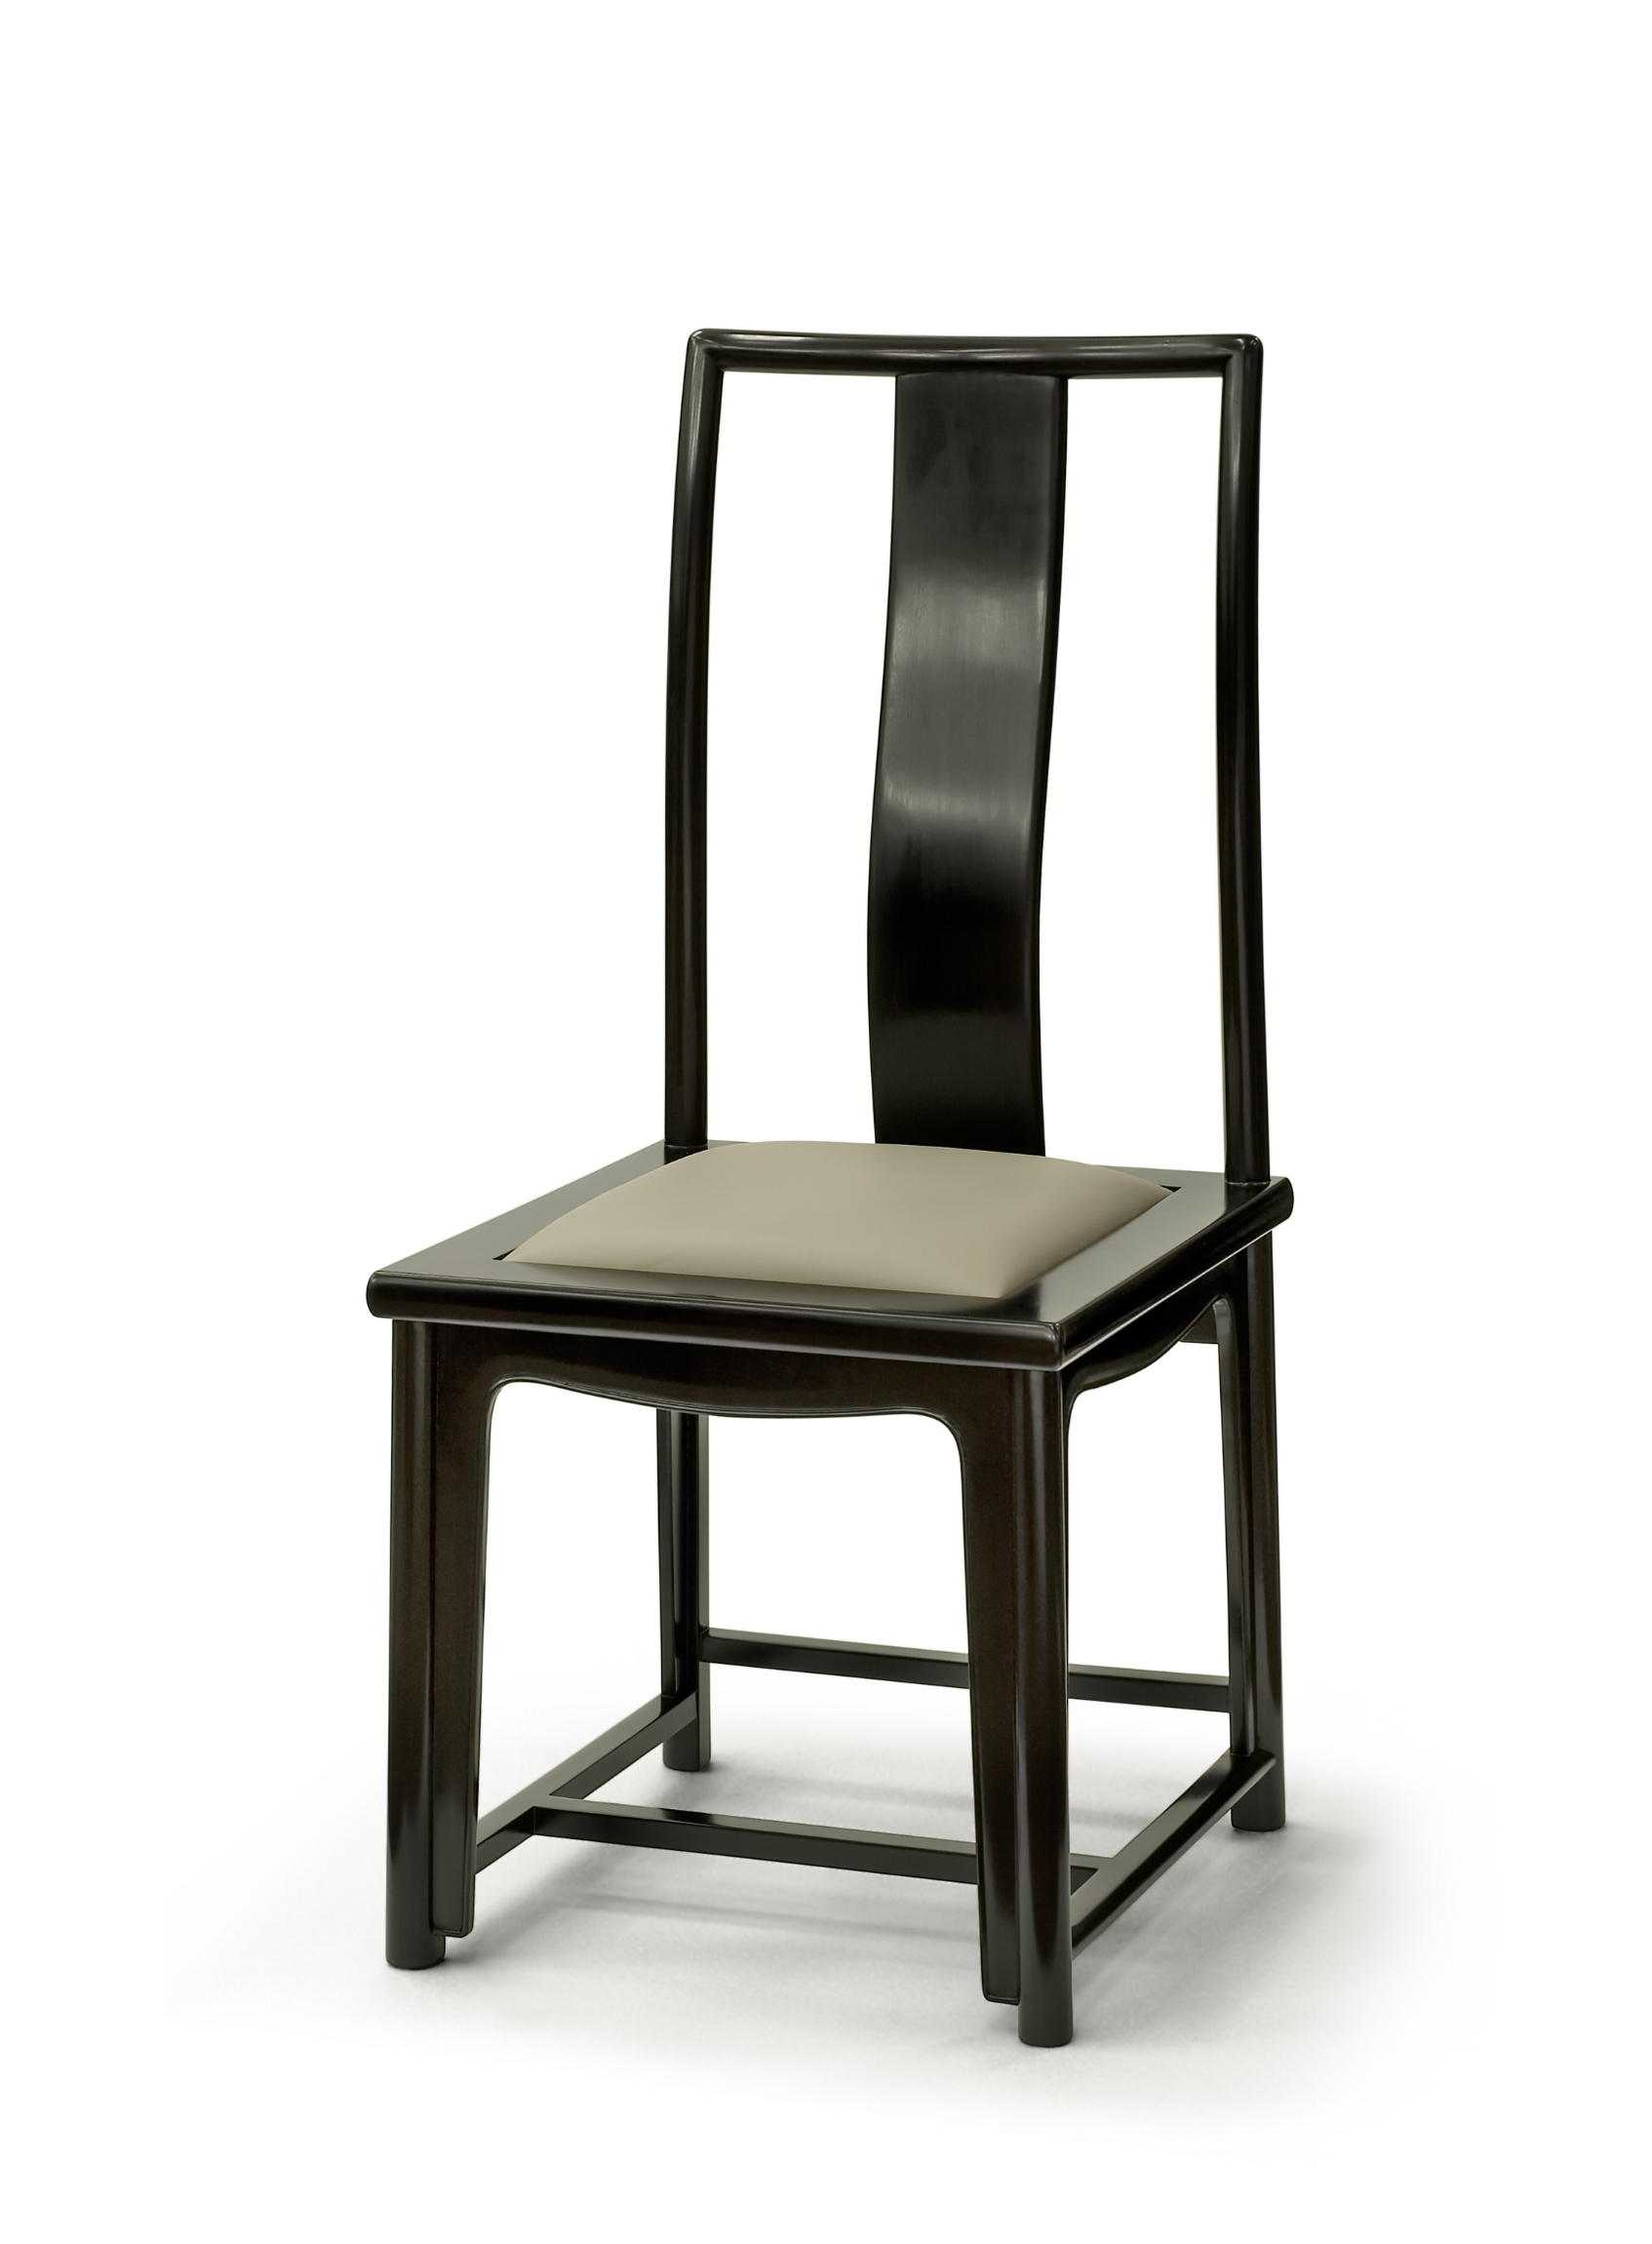 ....Ming Style Chinese furniture : Side chair..明式中式家具: 靠背椅....